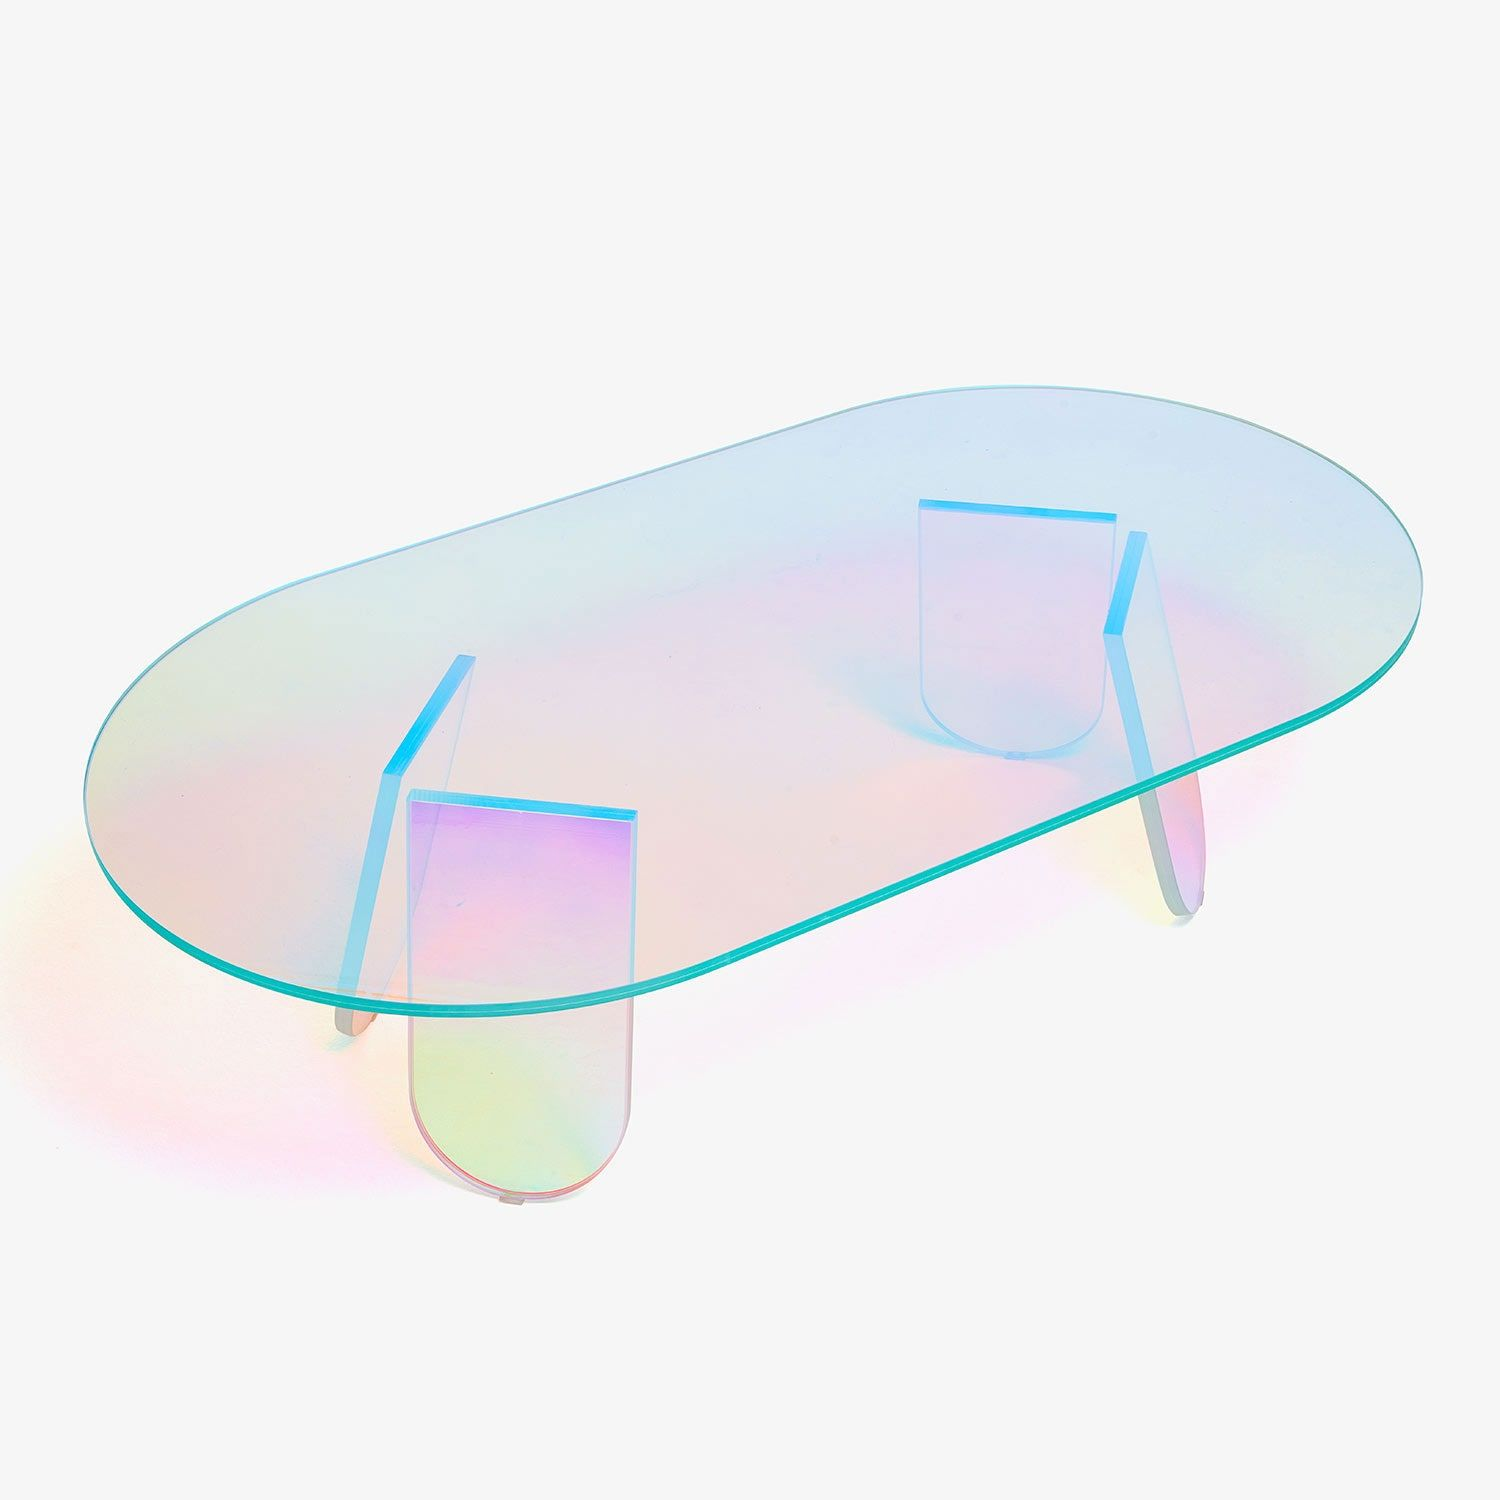 25 Glass Coffee Tables For Any And Every Living Room Acrylic Coffee Table Modern Furniture Decor Iridescent Decor [ 1500 x 1500 Pixel ]